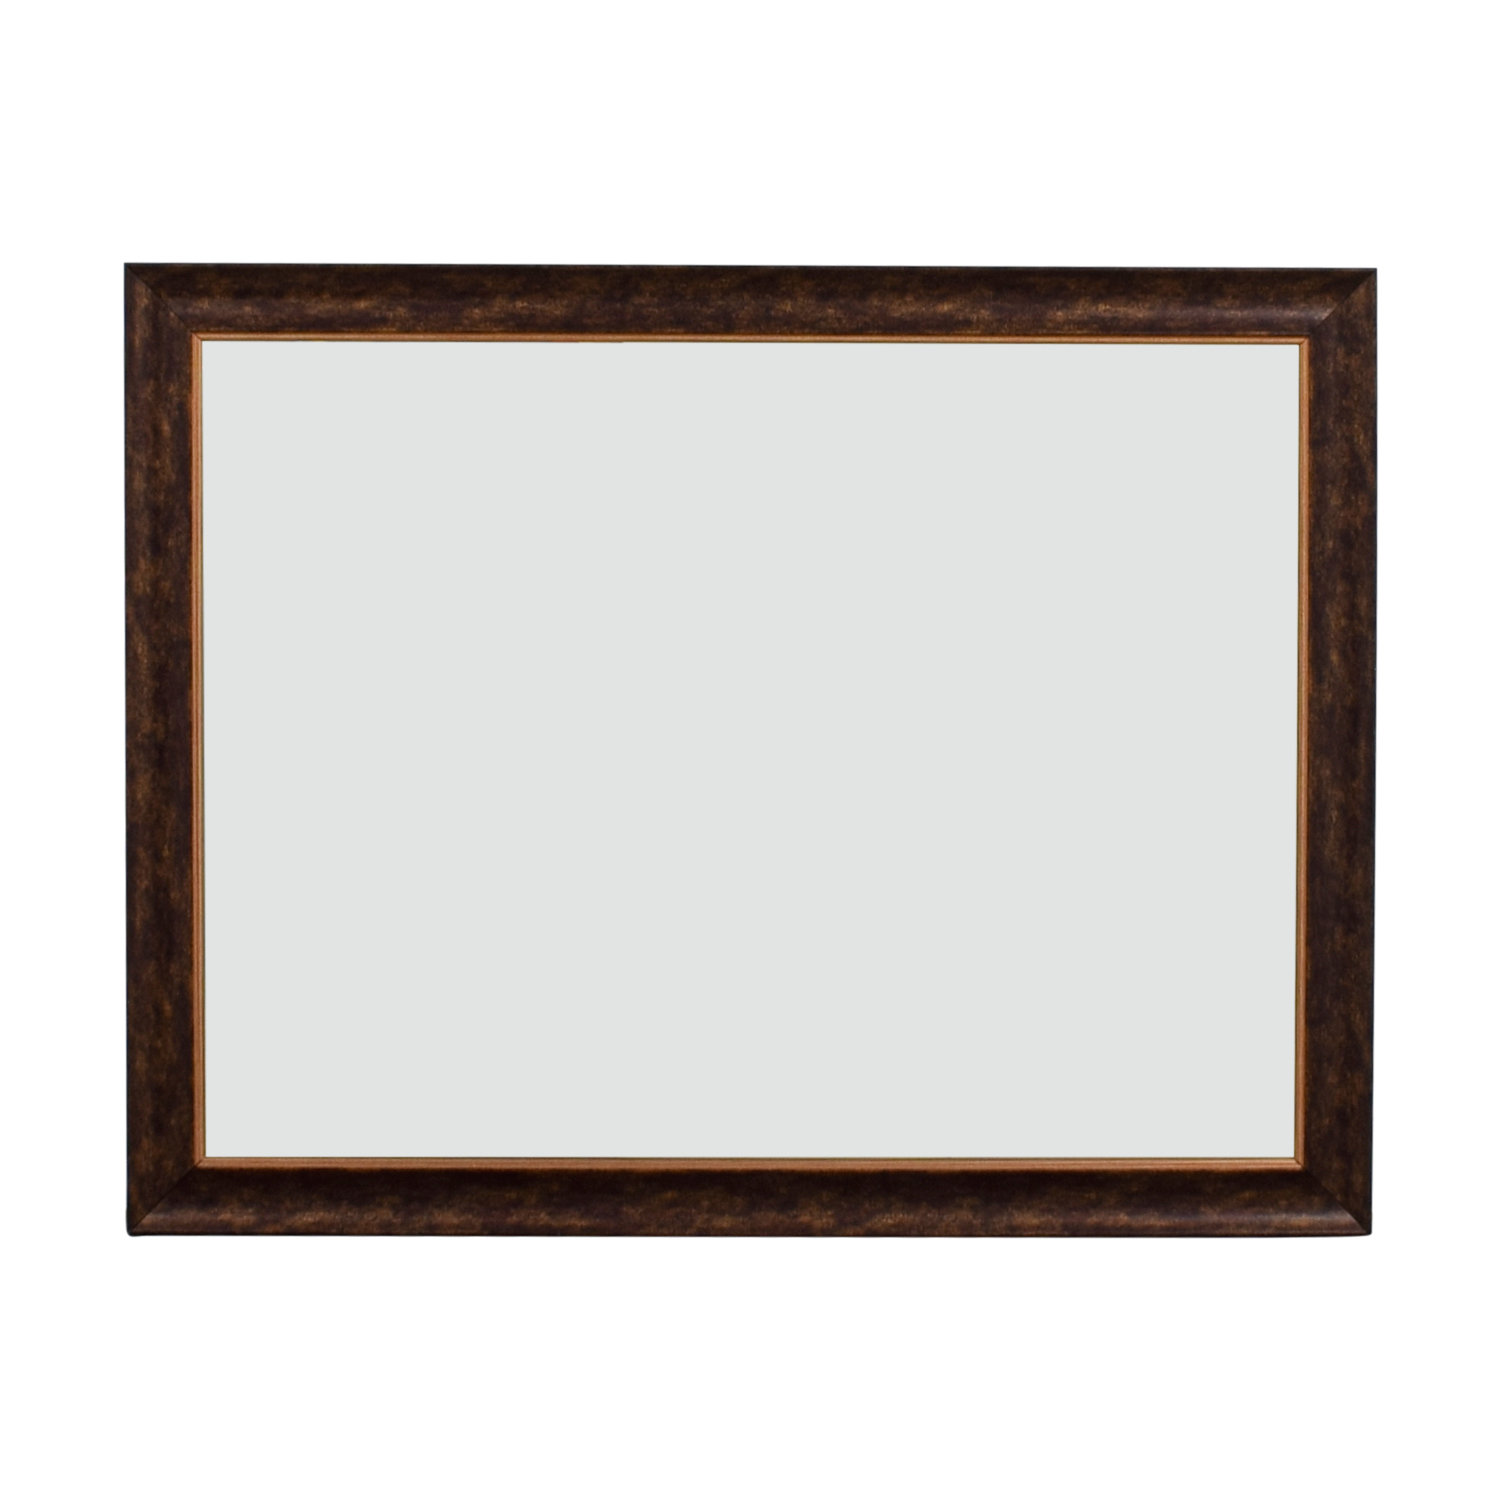 Bombay and Company Bombay and Company Rustic Beveled Mirror price